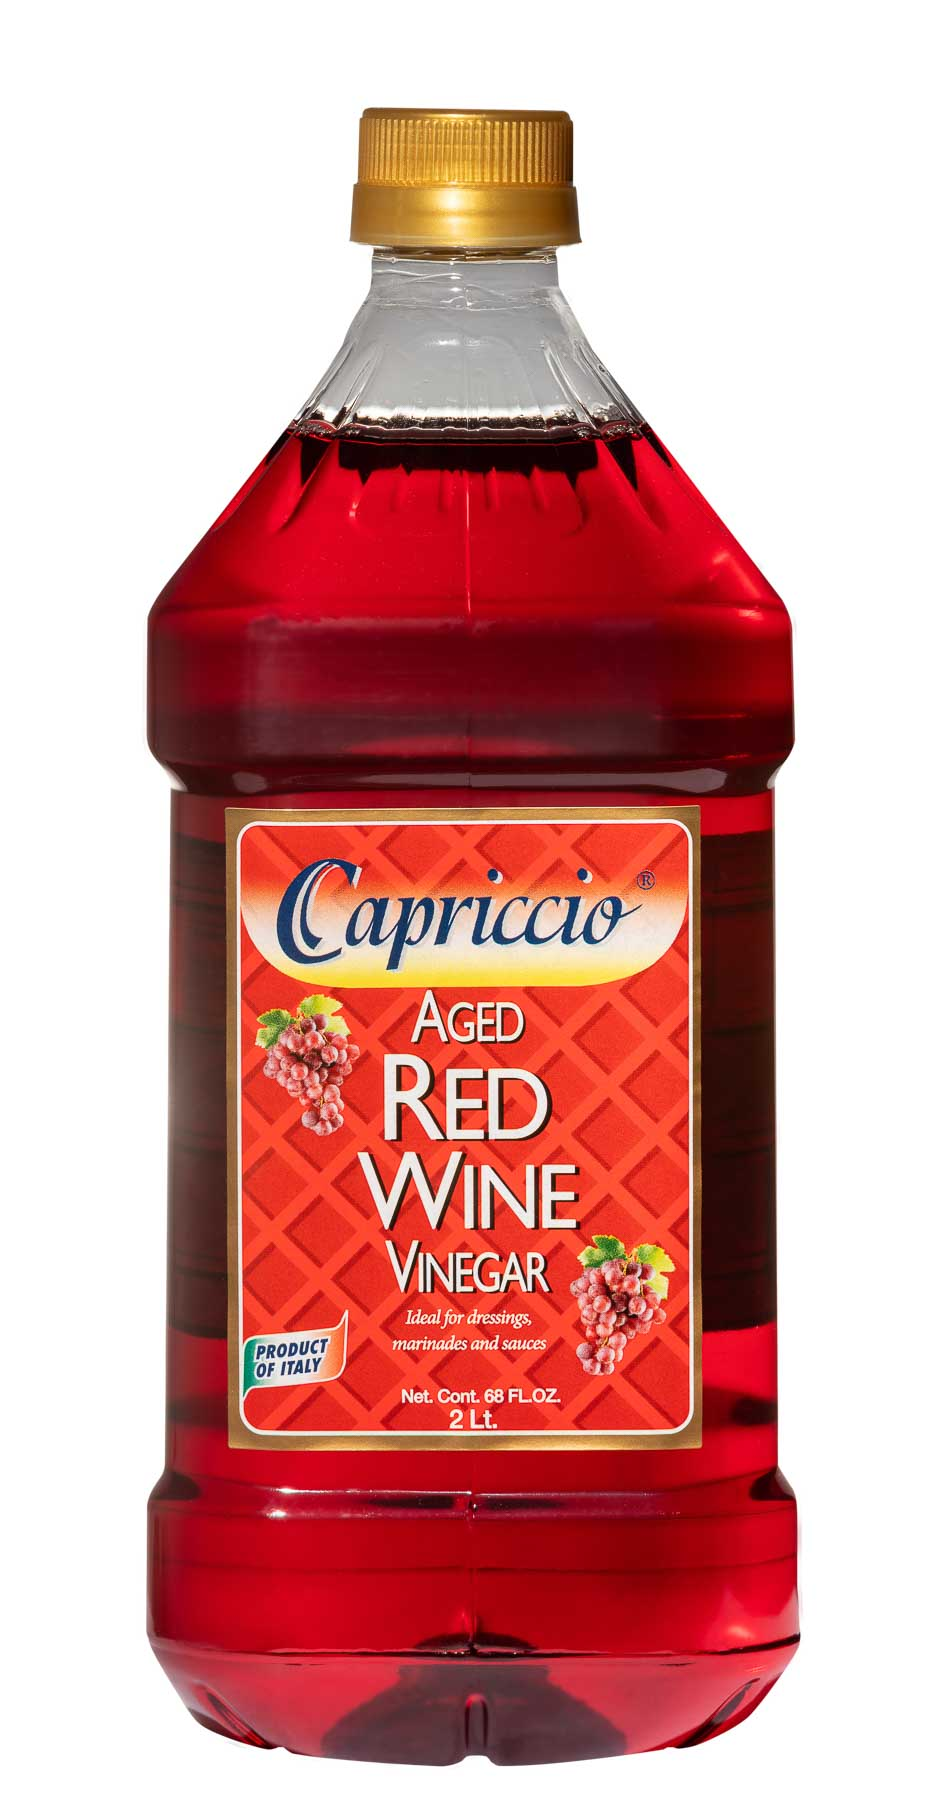 Aged Red Wine Vinegar 2lt - Product Photography